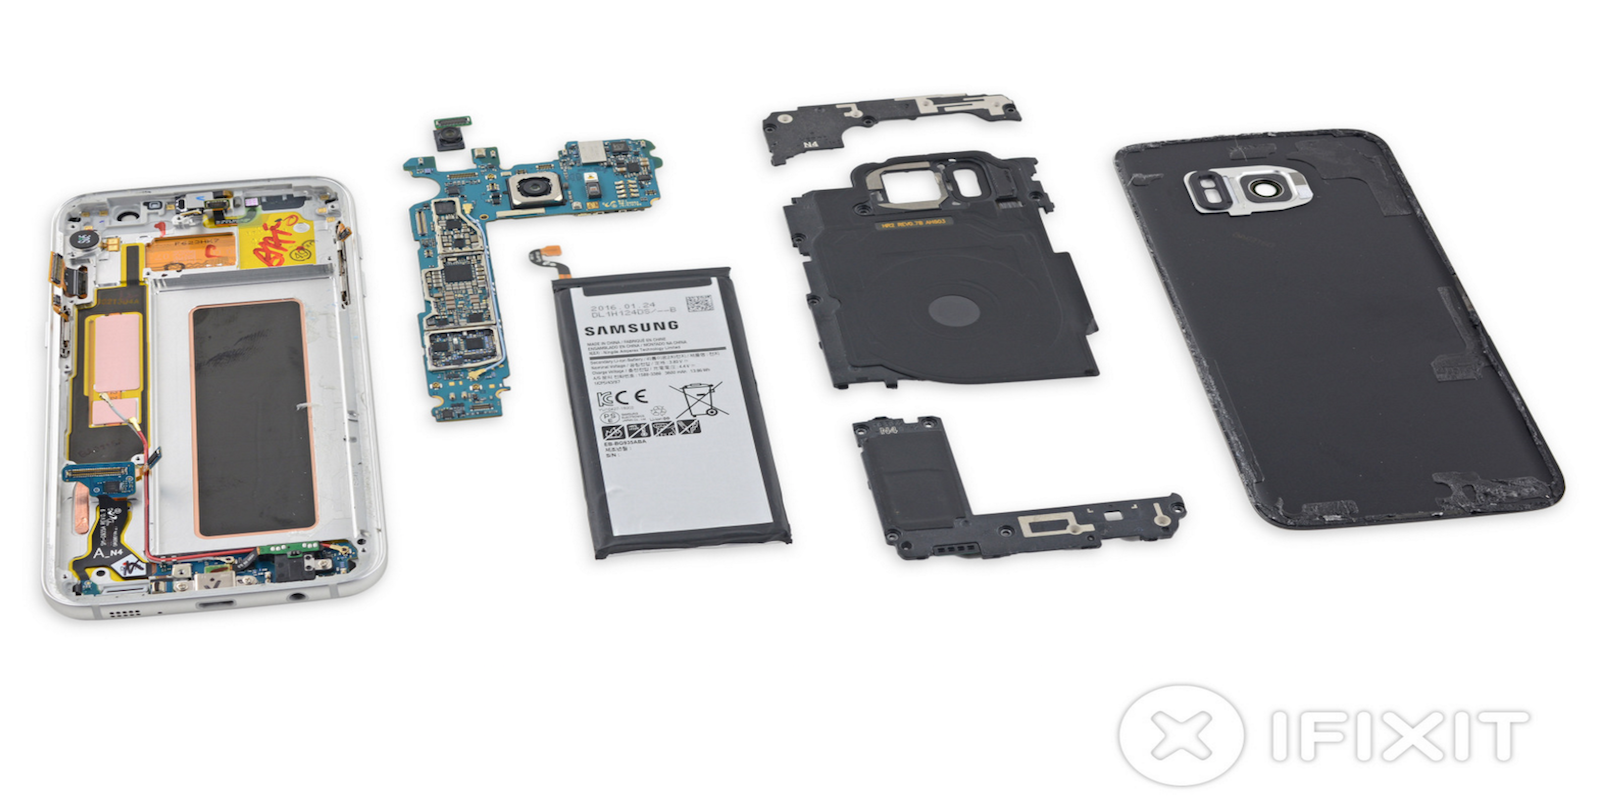 Samsung-Galaxy-S7-edge-teardown